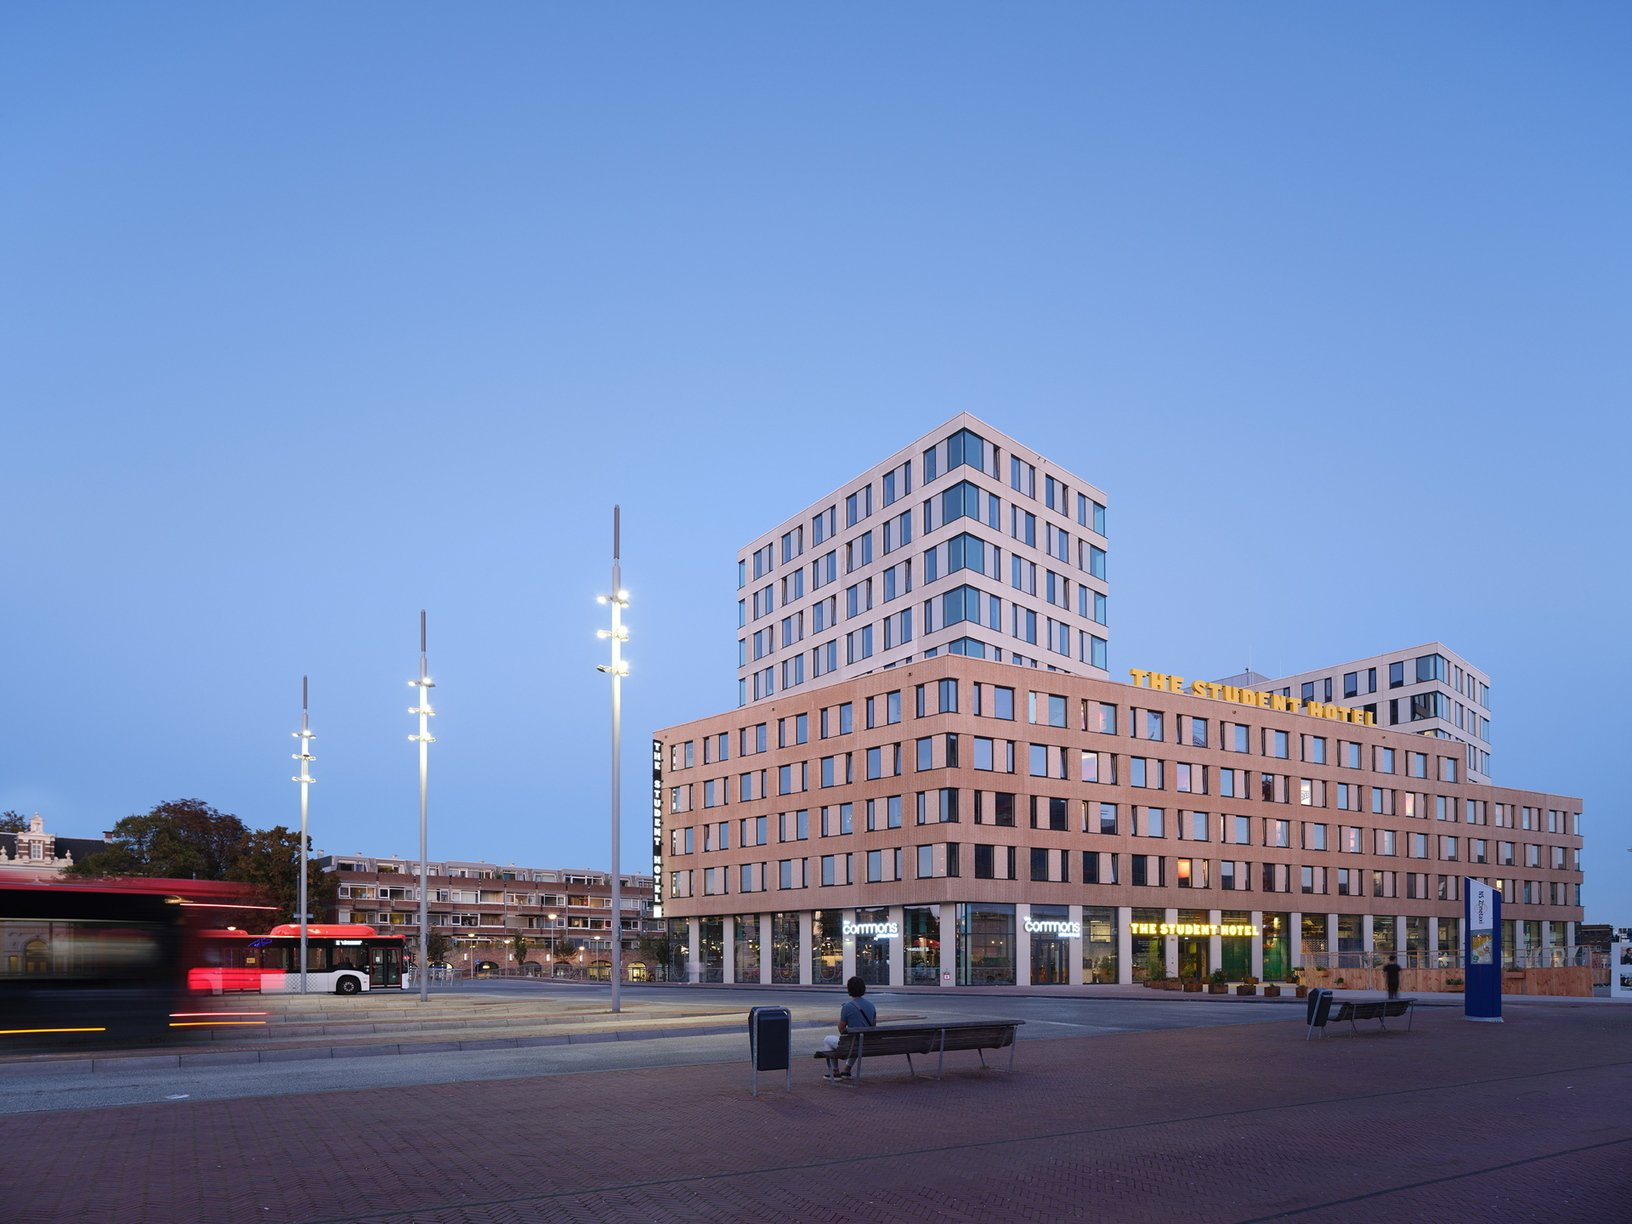 , The Student Hotel in Delft sustainable accommodation by KCAP | Livegreenblog, The Circular Economy